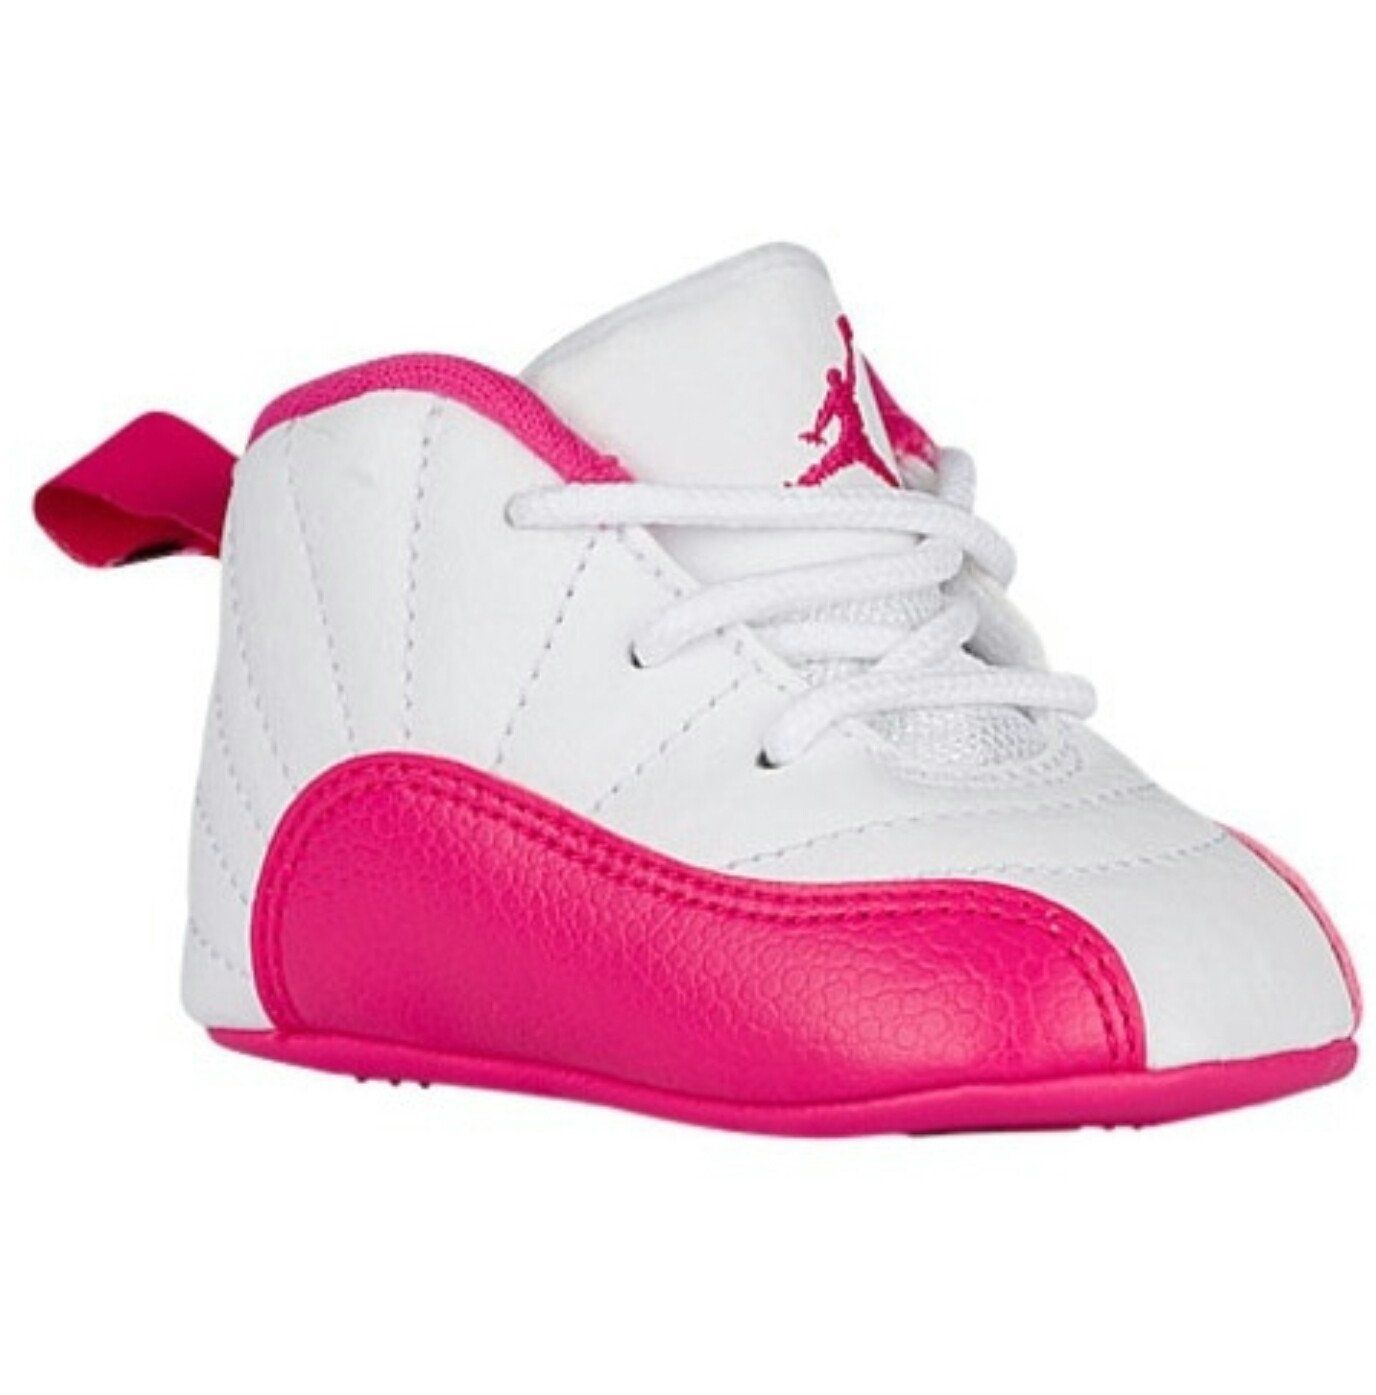 8d1dbe768cd2f3 INFANT AIR JORDAN RETRO 12 VIVID PINK